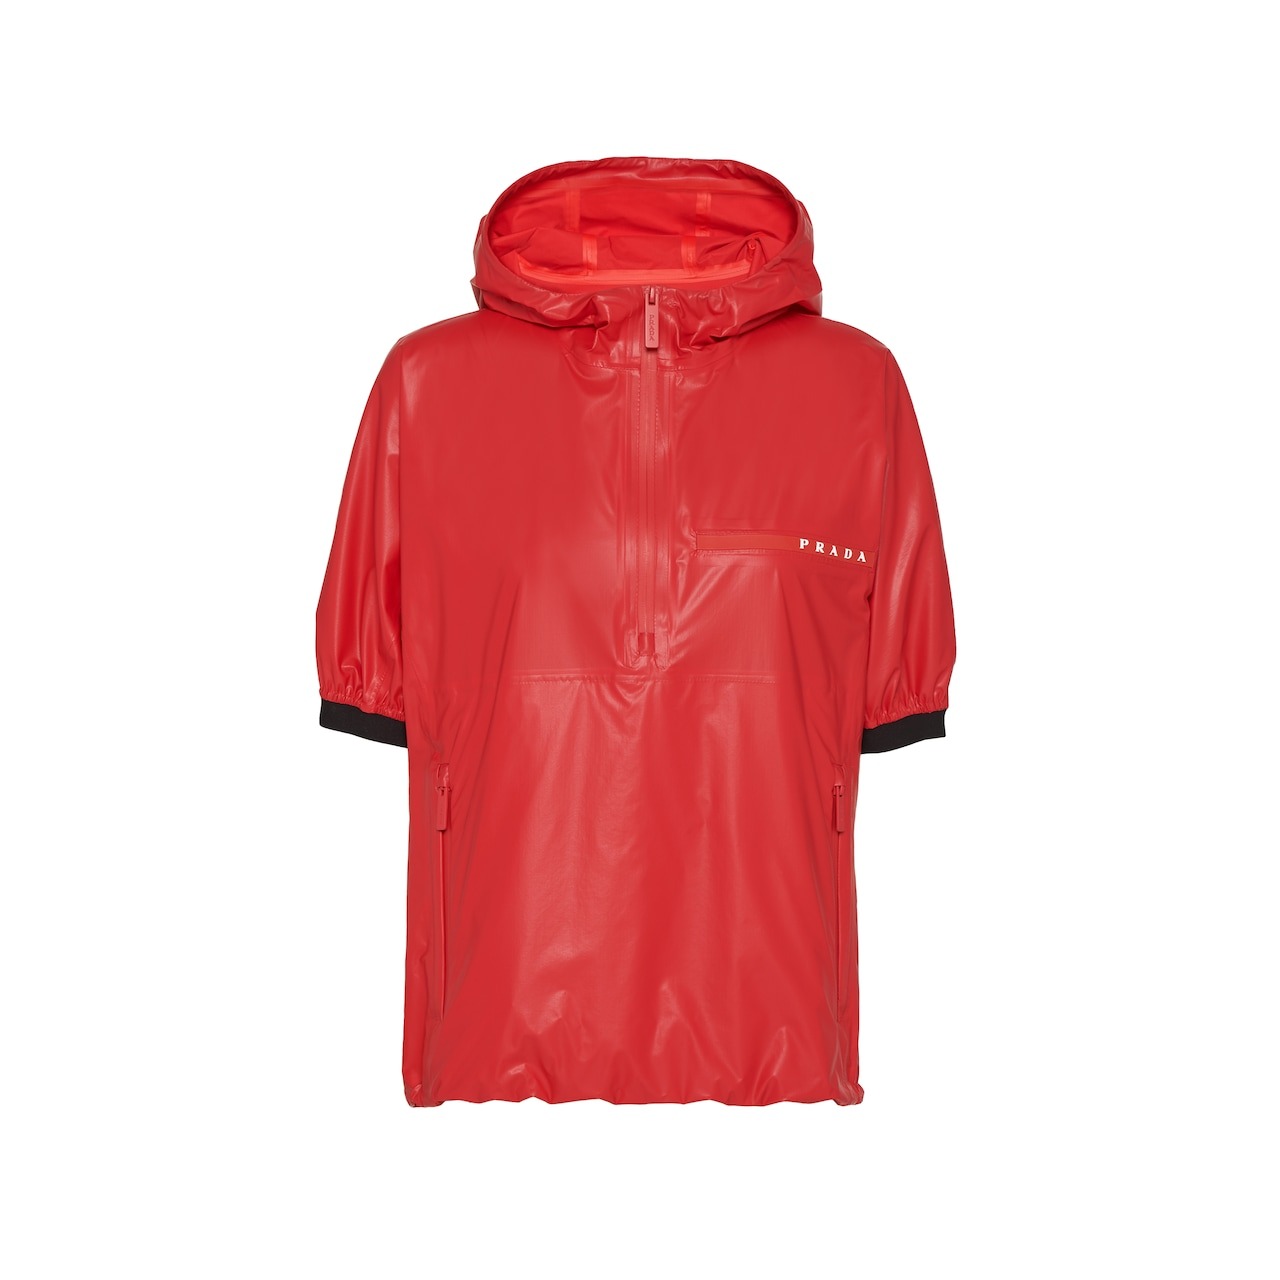 LR-LX6-MK2 Light bonded nylon anorak